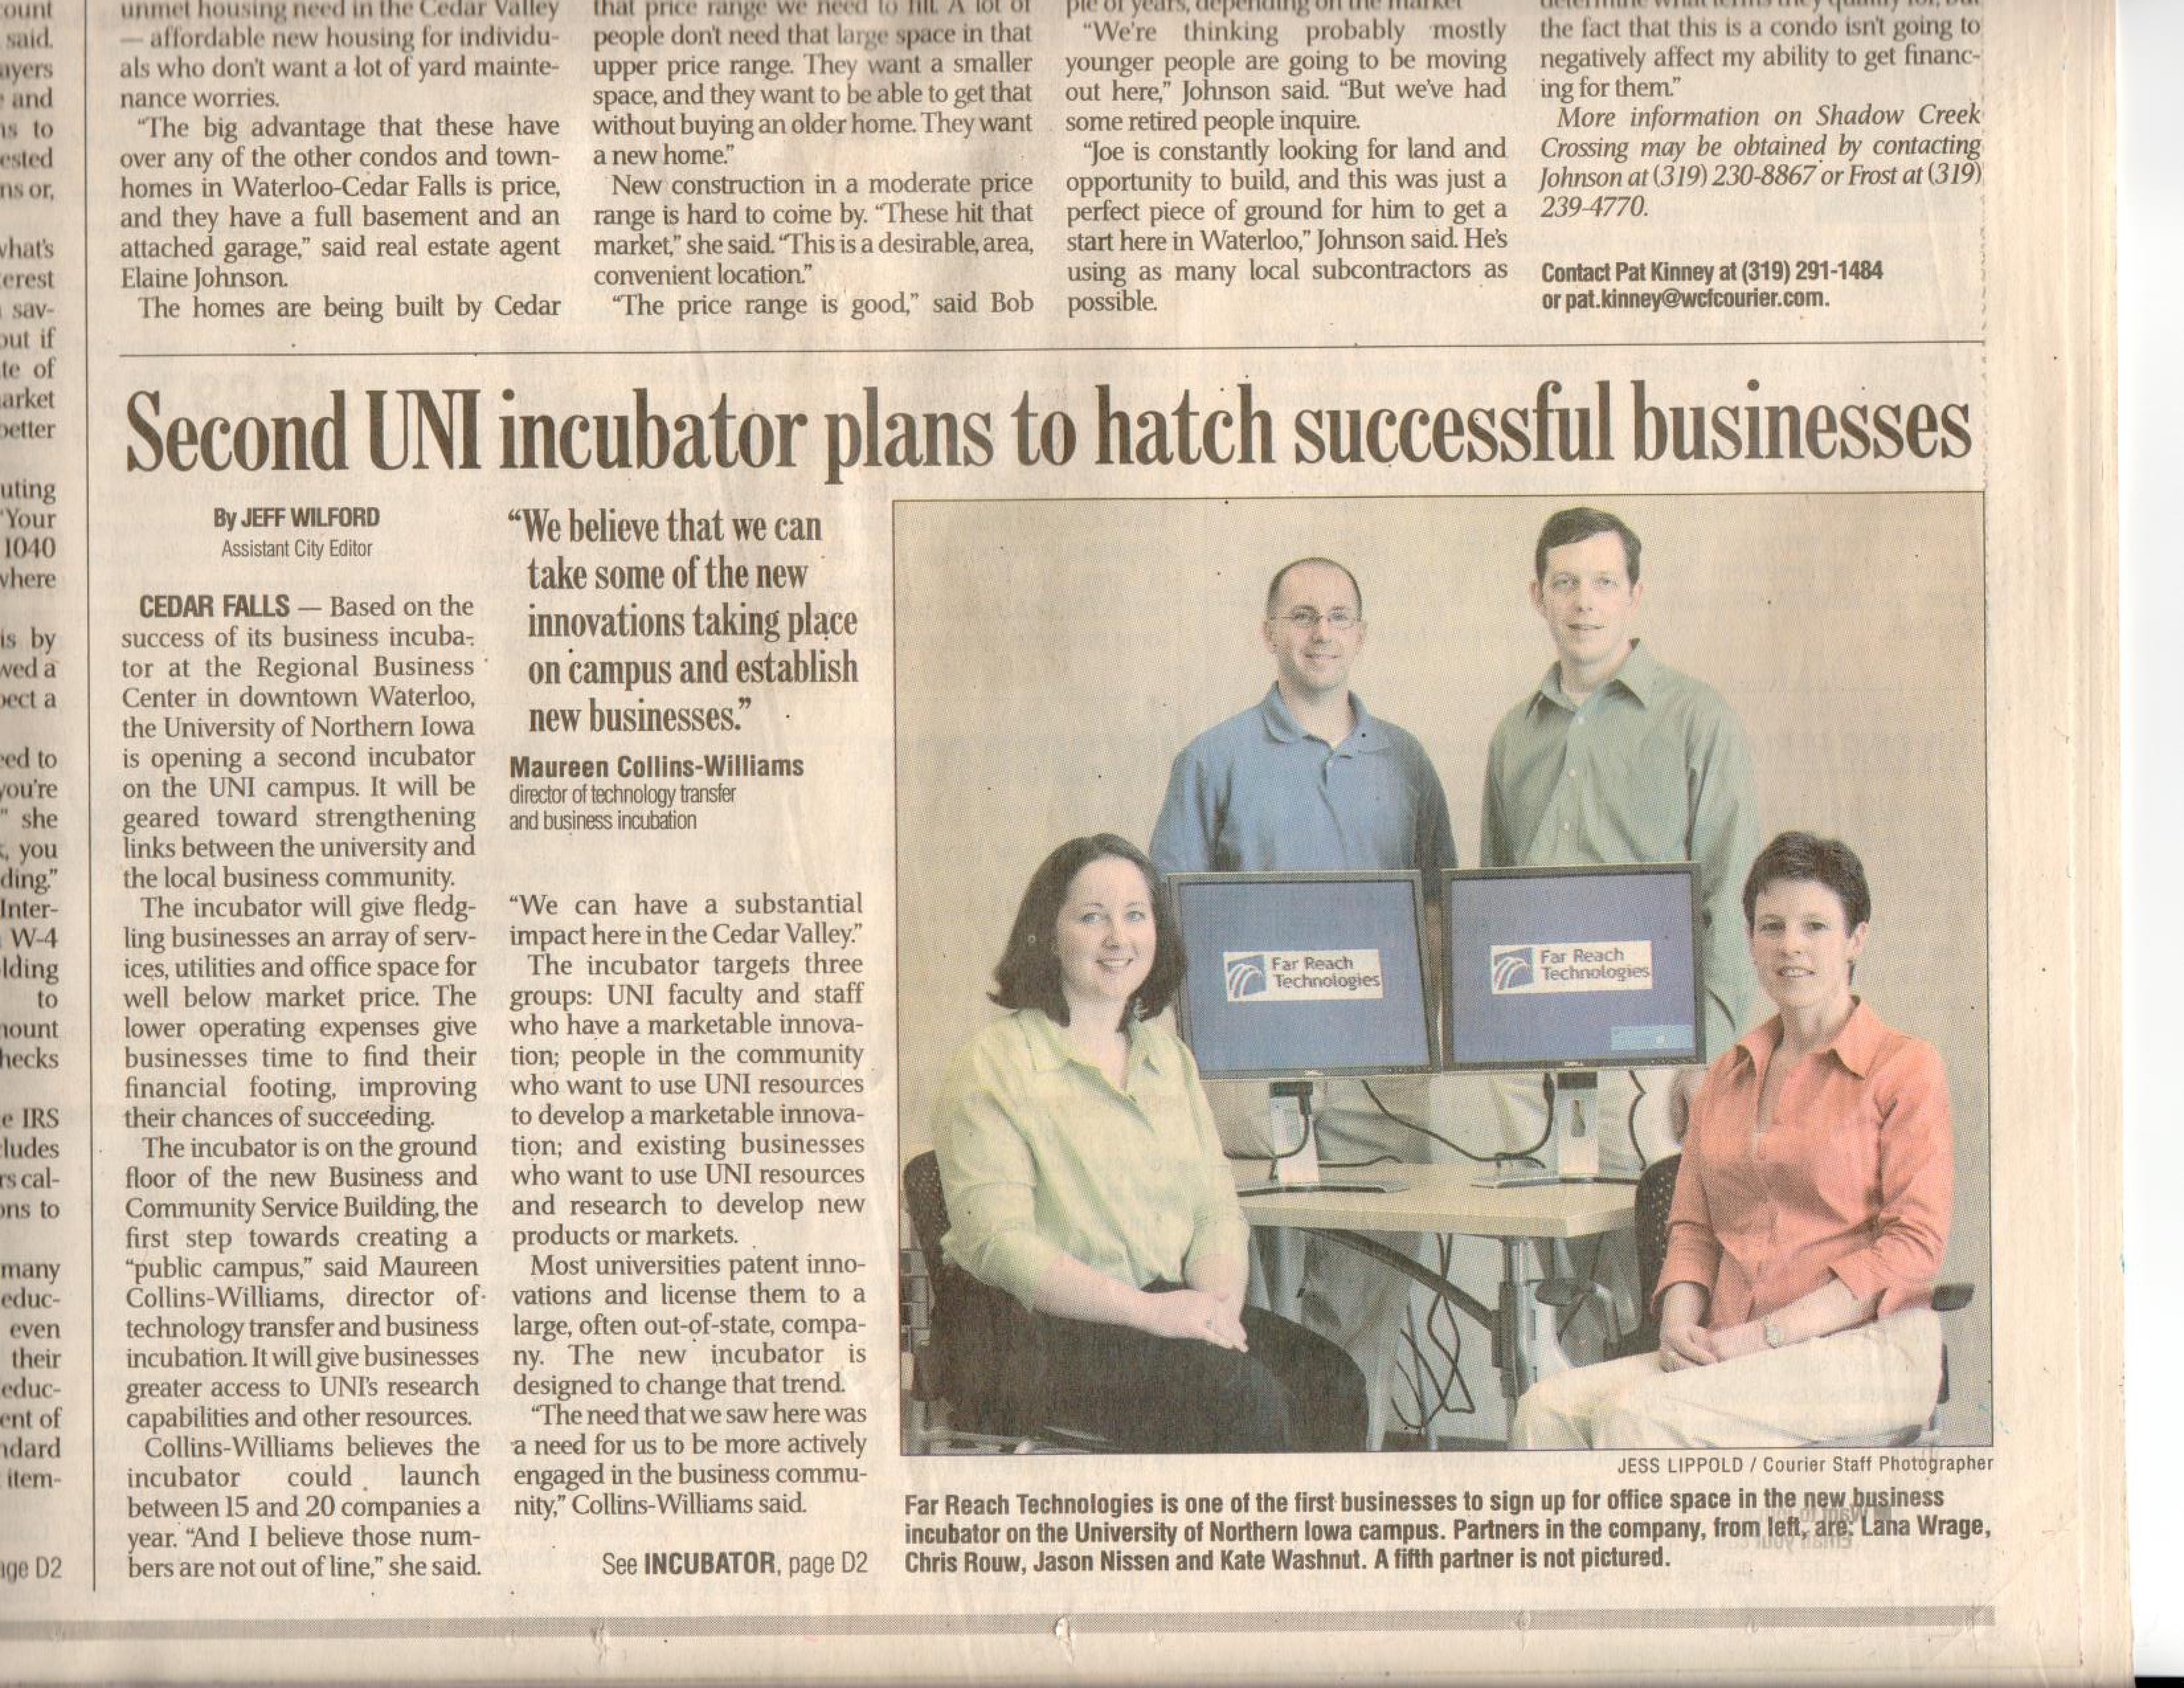 Second UNI Incubator Plans To Hatch Successful Businesses